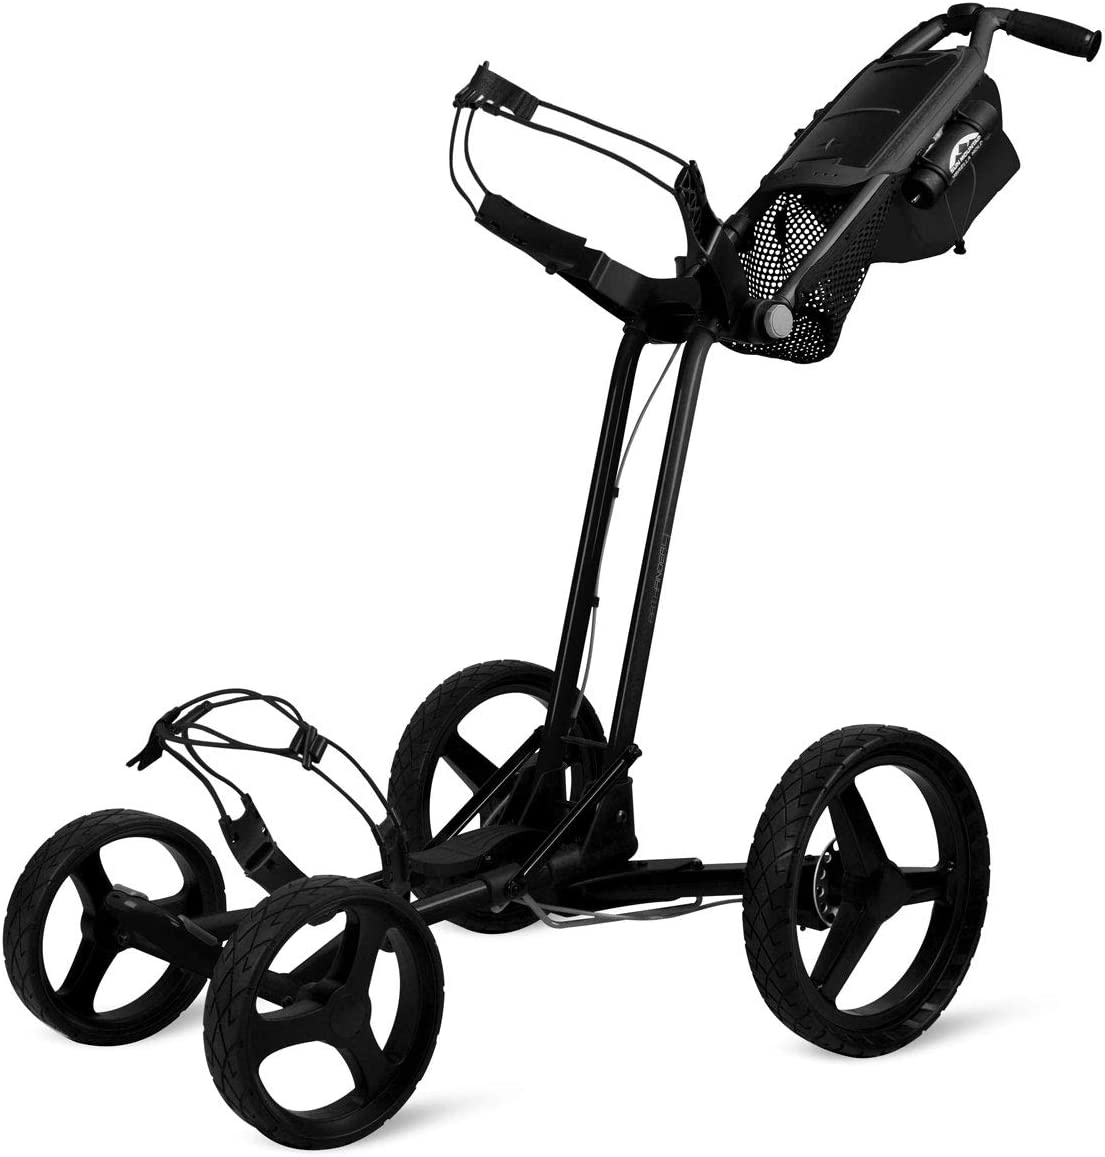 Sun Mountain Pathfinder 4 Golf Push Cart